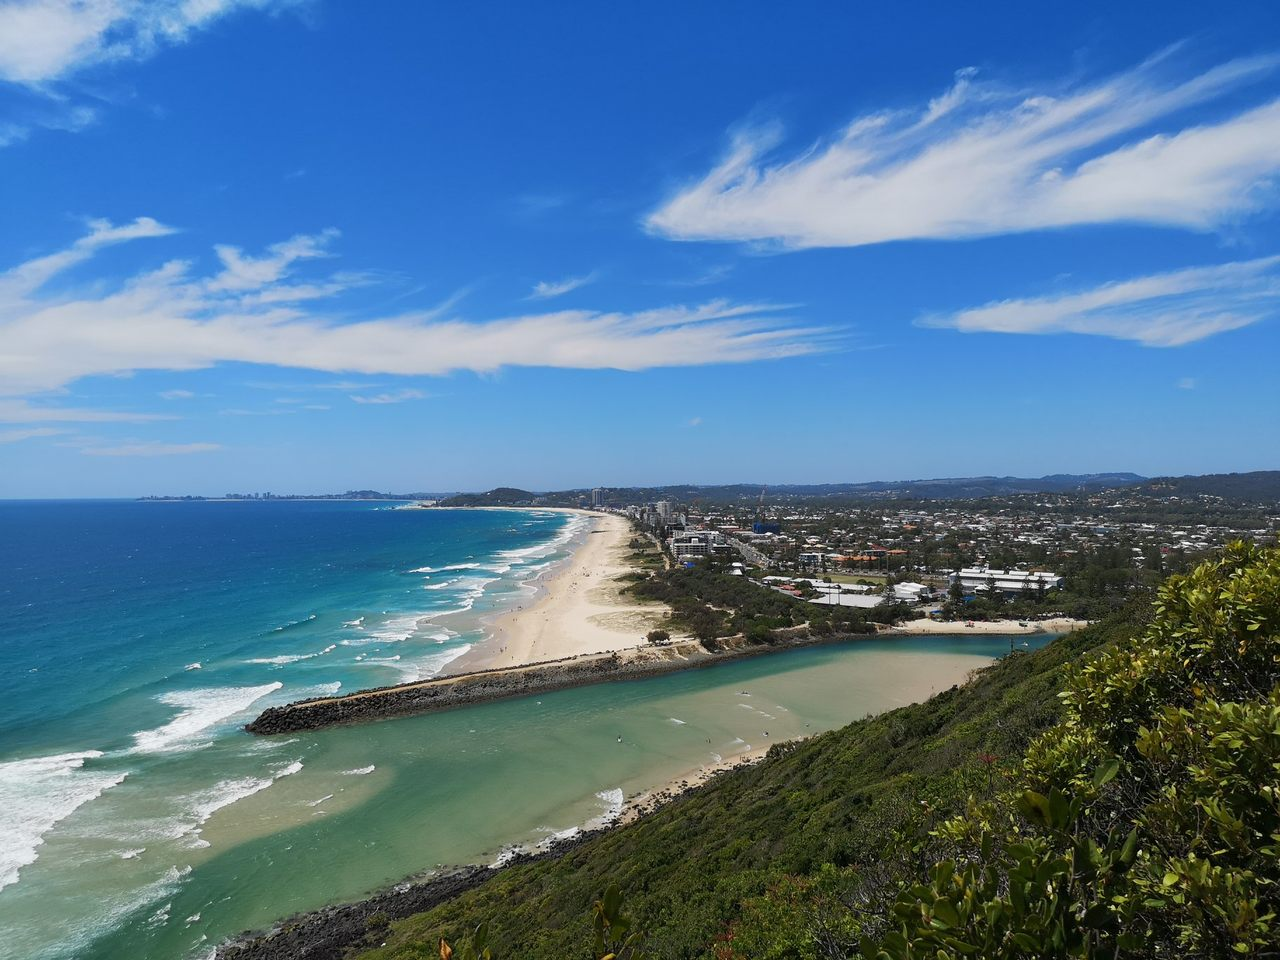 Body of water, Sky, Coast, Sea, Ocean, Shore, Beach, Coastal and oceanic landforms, Blue, Natural landscape, Headland, Cloud, Promontory, Bay, Azure, Water resources, Water, Vacation, Tourism, Cape, Tumgun Lookout, Burleigh Head National Park